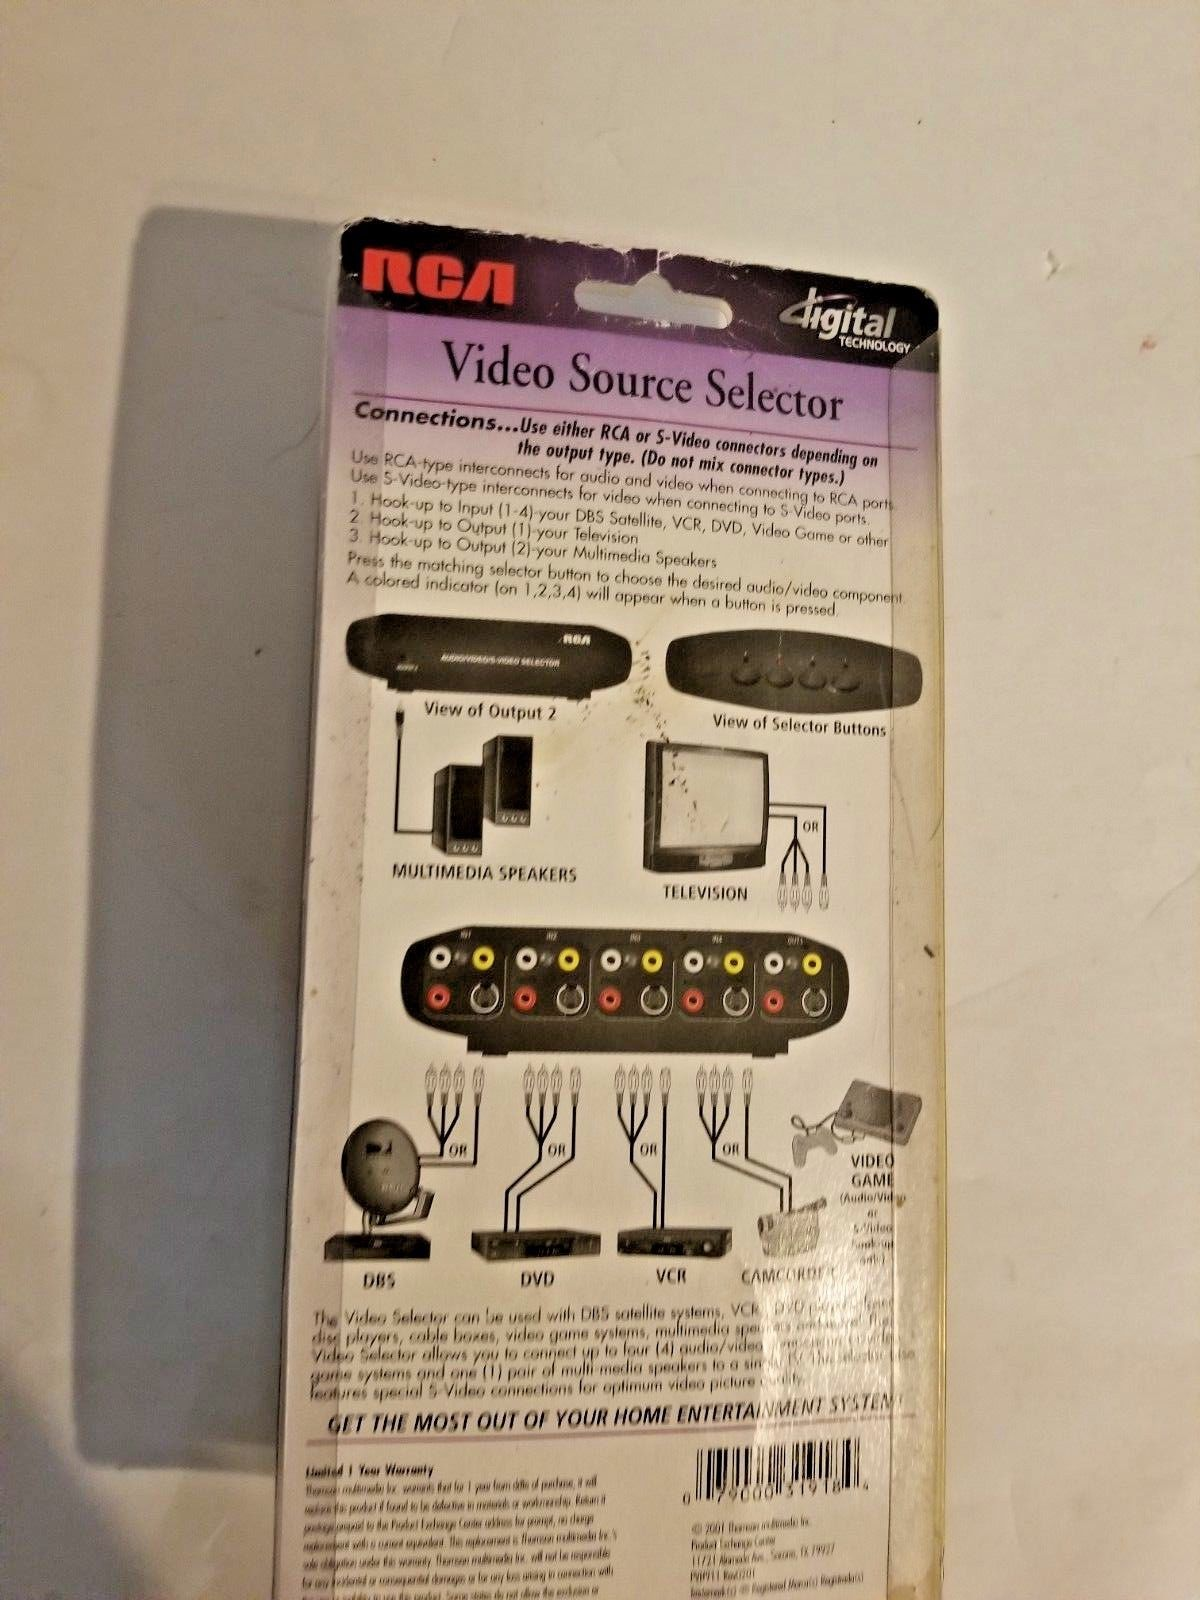 Video Source Selector RCA New Digital Technology VH911